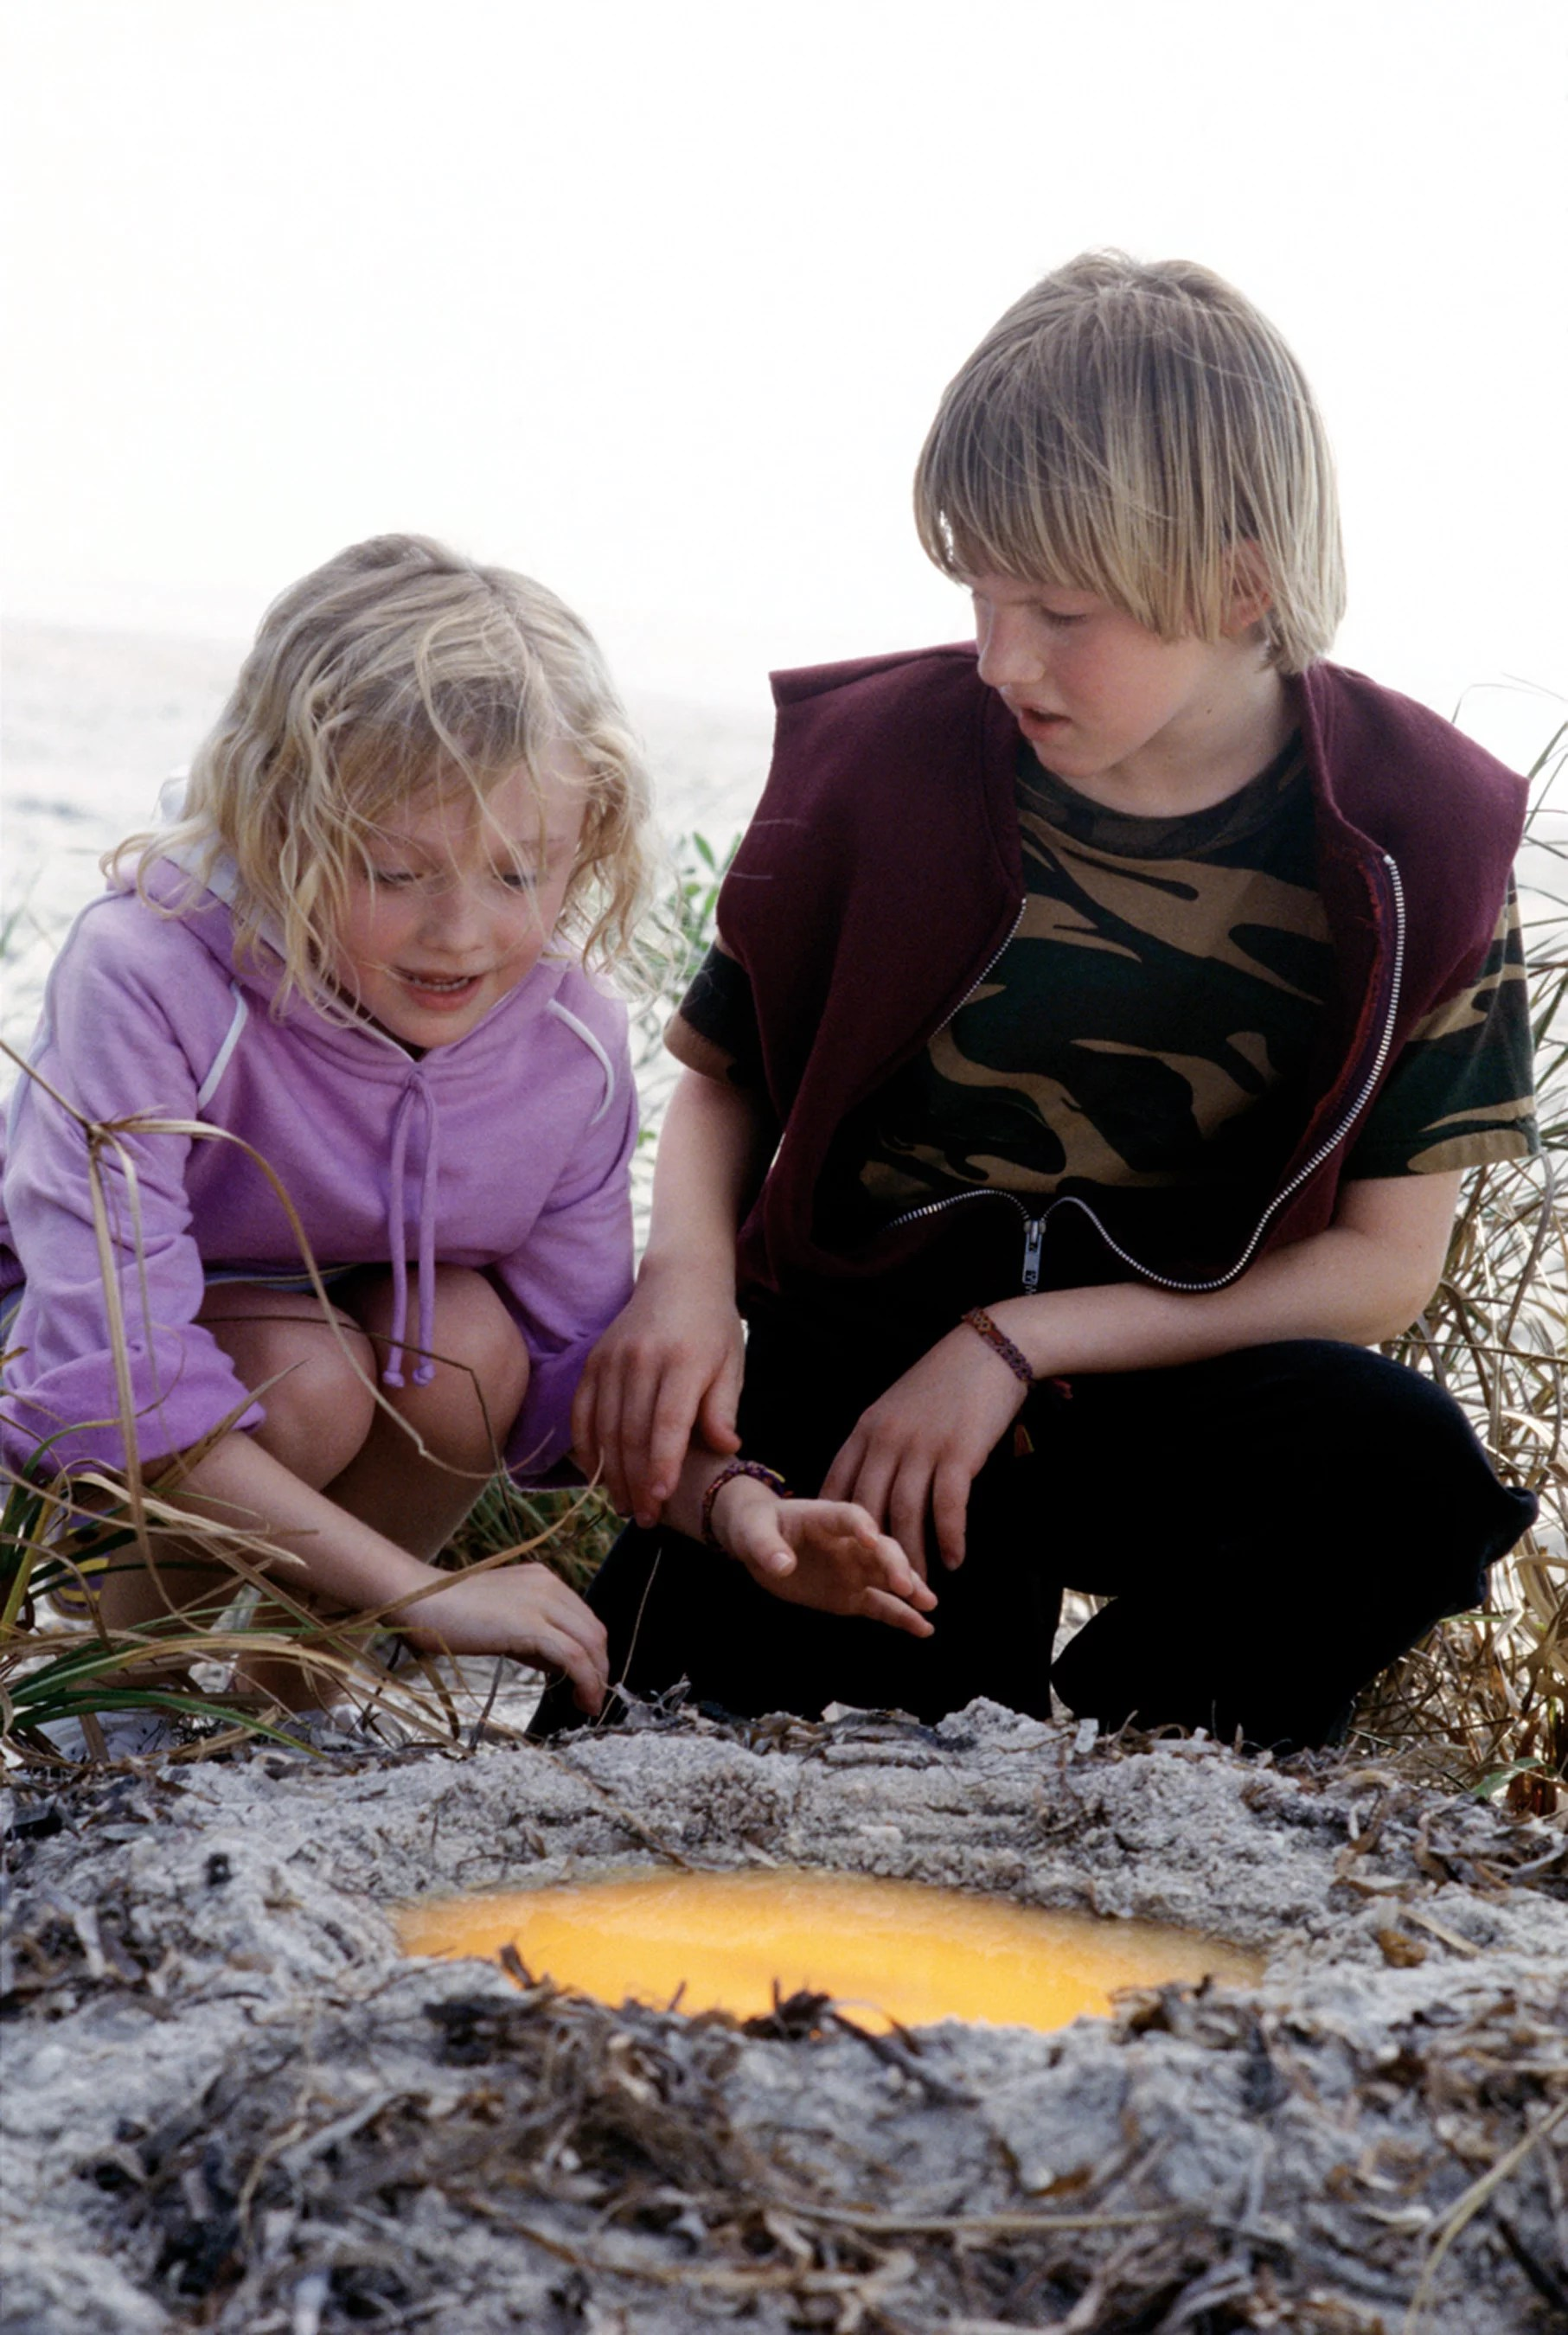 Reese witherspoon, patrick dempsey, candace bergen and josh lucas star in the film, which celebrated its … Sweet Home Alabama The Most Memorable Beach Scenes In Movie History Popsugar Entertainment Photo 62